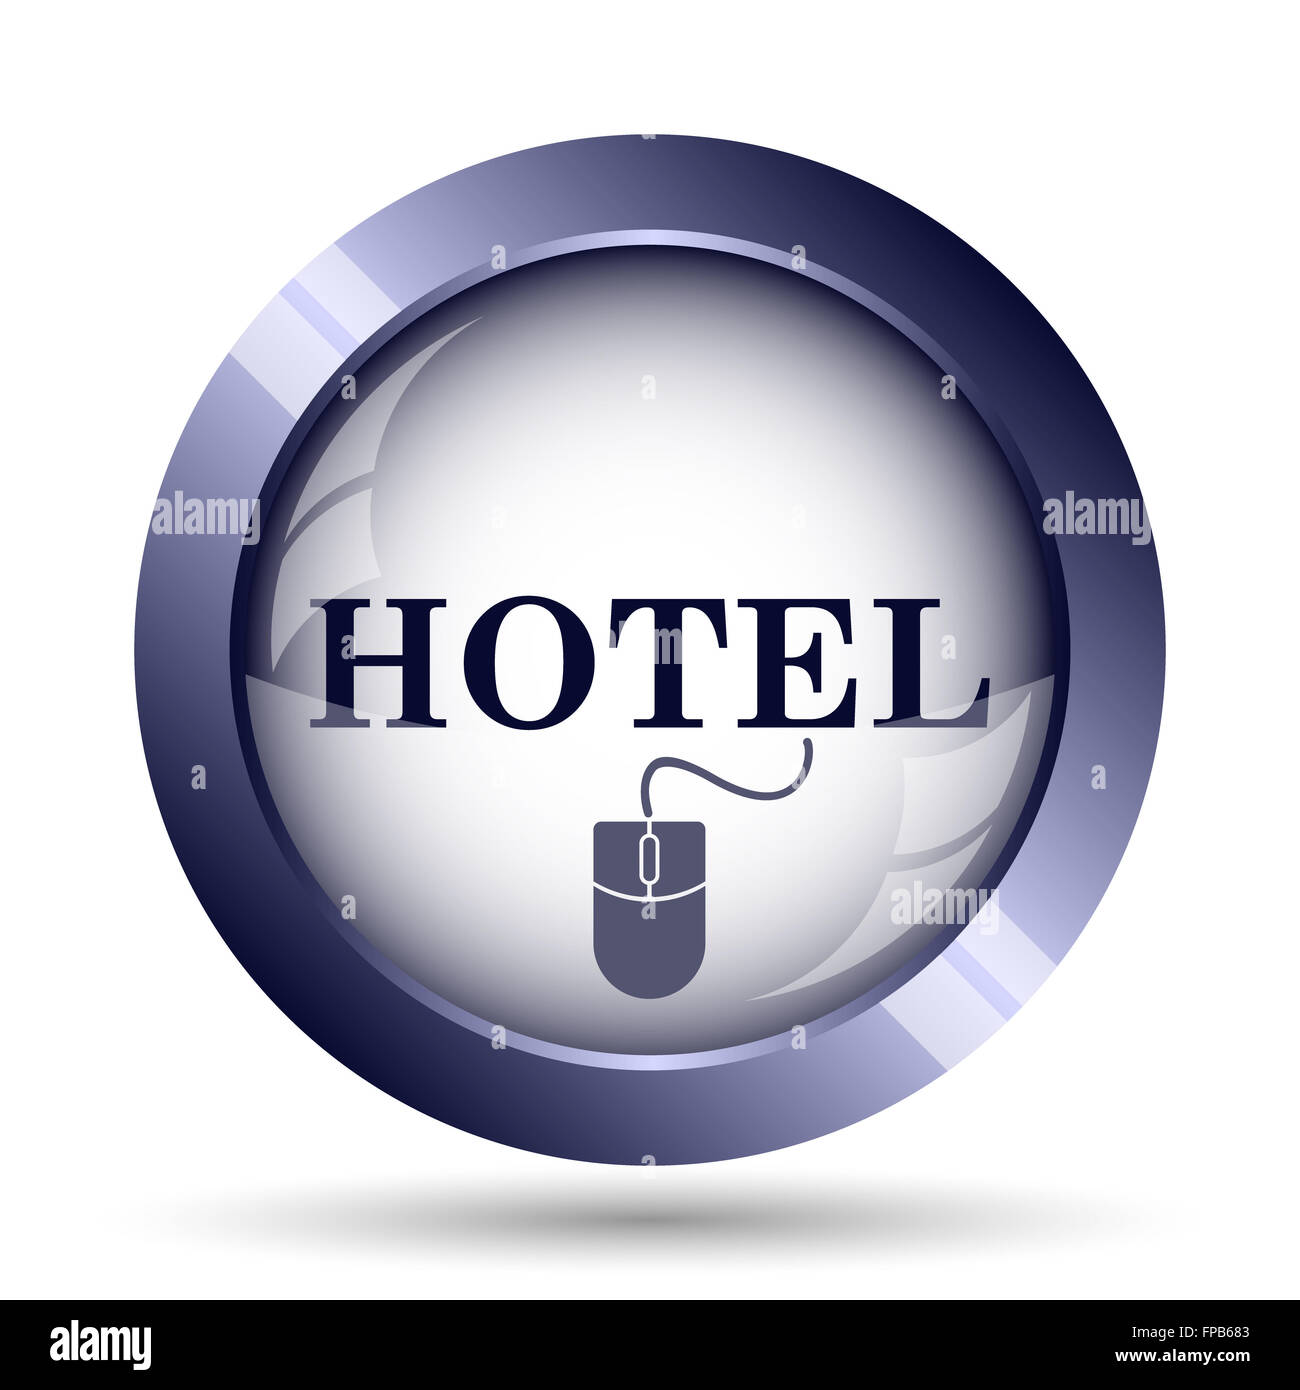 Hotel icon. Internet button on white background. - Stock Image